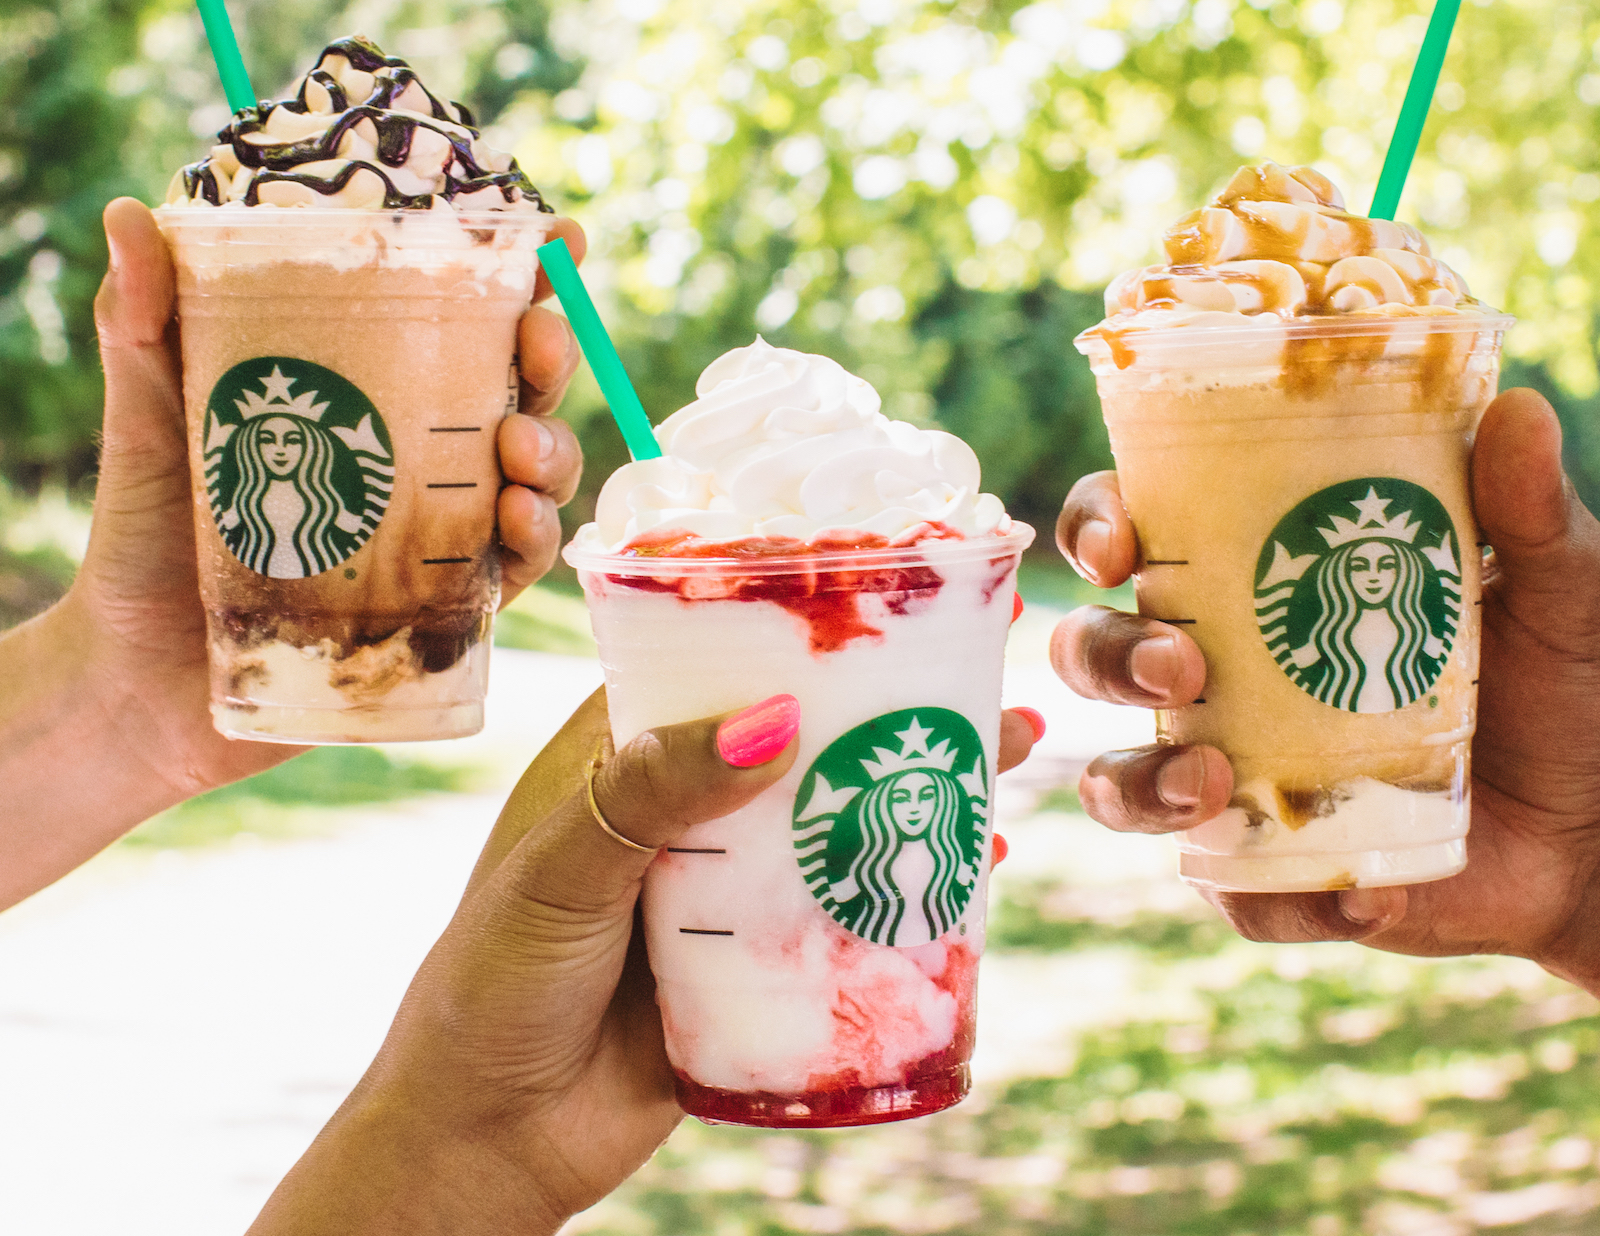 Starbucks' New Strawberry Frappuccino Ditches Millennial Pink for a Layered Look